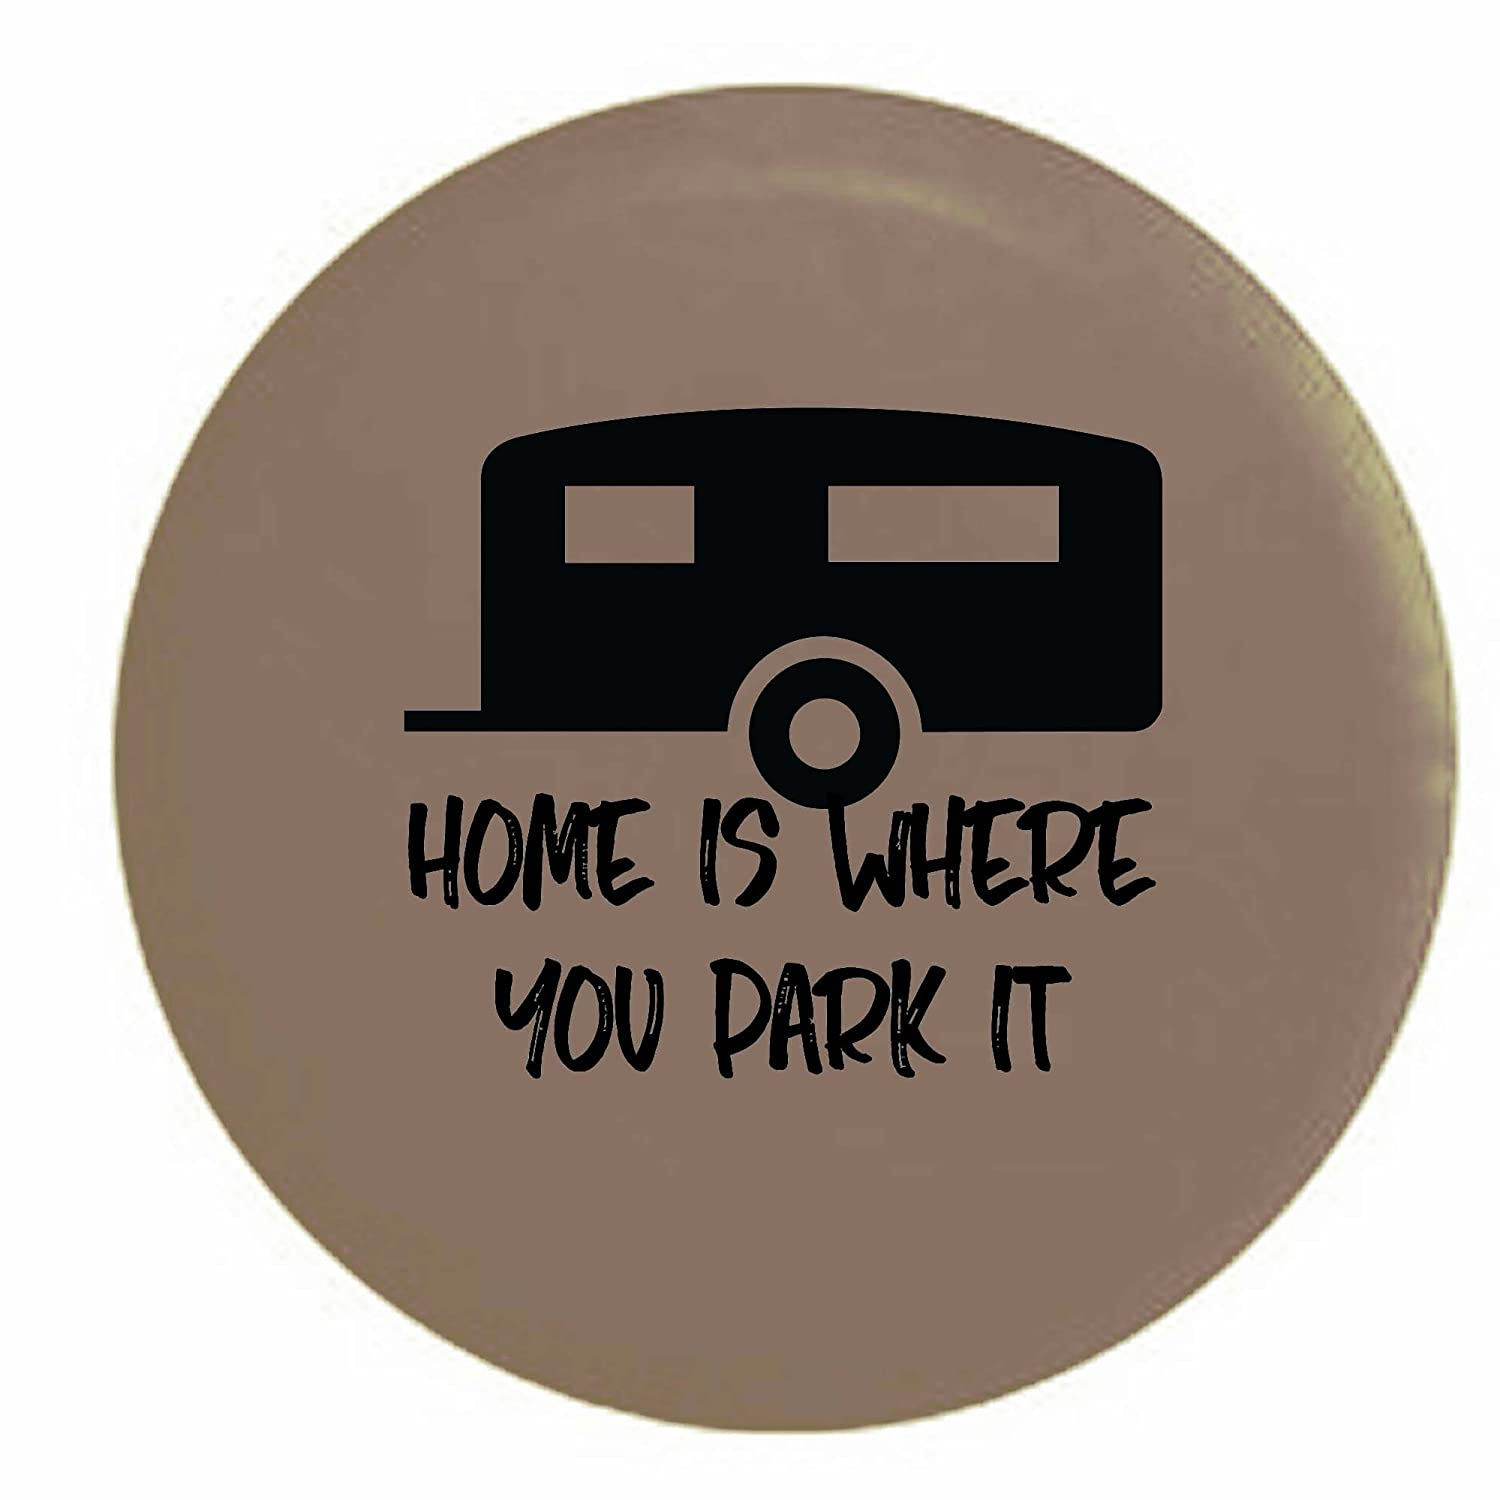 Home is Where You Park It Camper Spare Tire Cover OEM Vinyl Tan 27.5 in Pike Outdoors